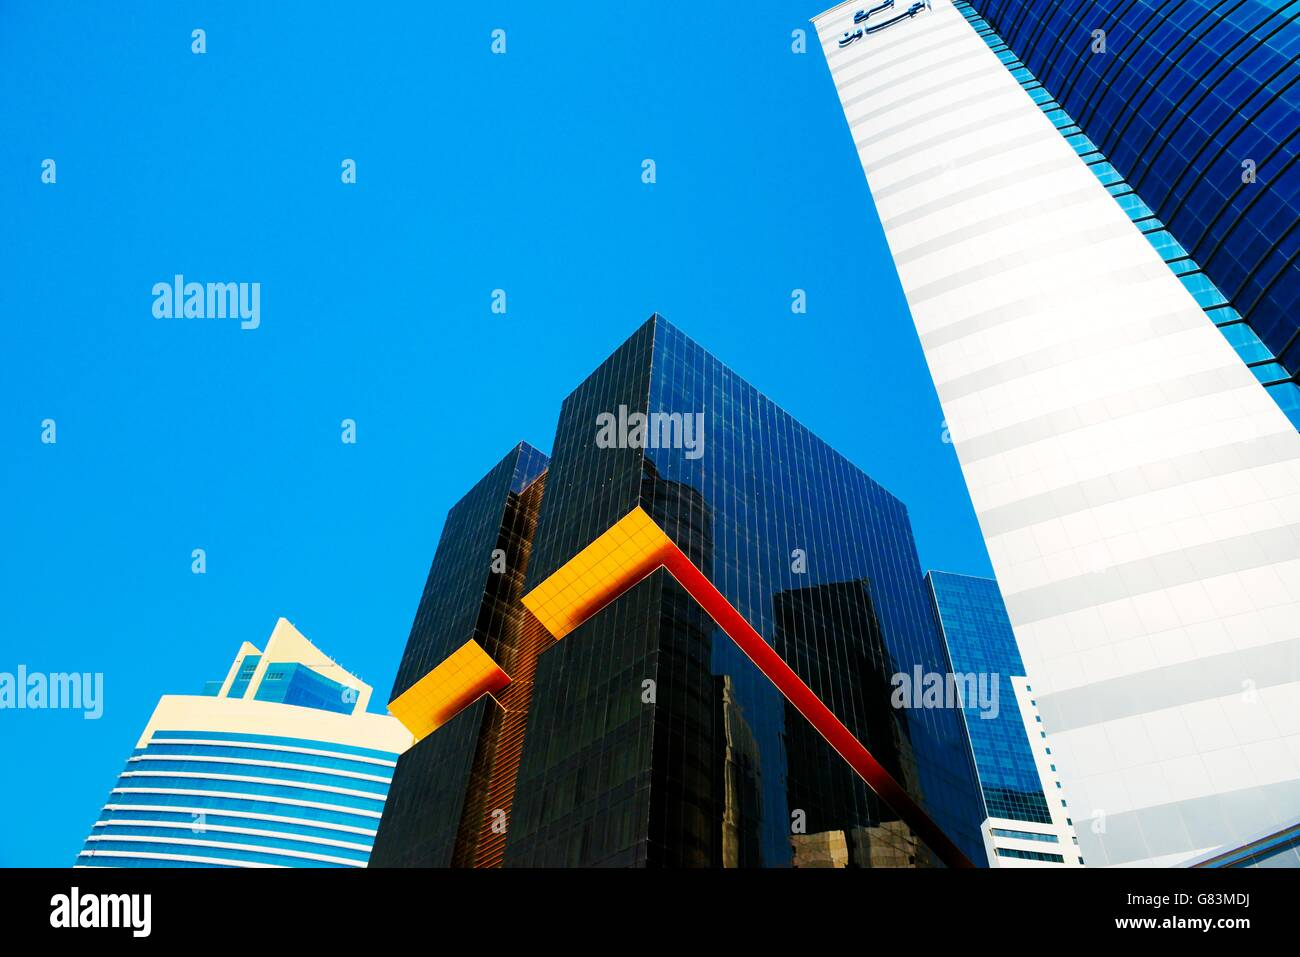 City Blocks Stock Photos & City Blocks Stock Images - Alamy